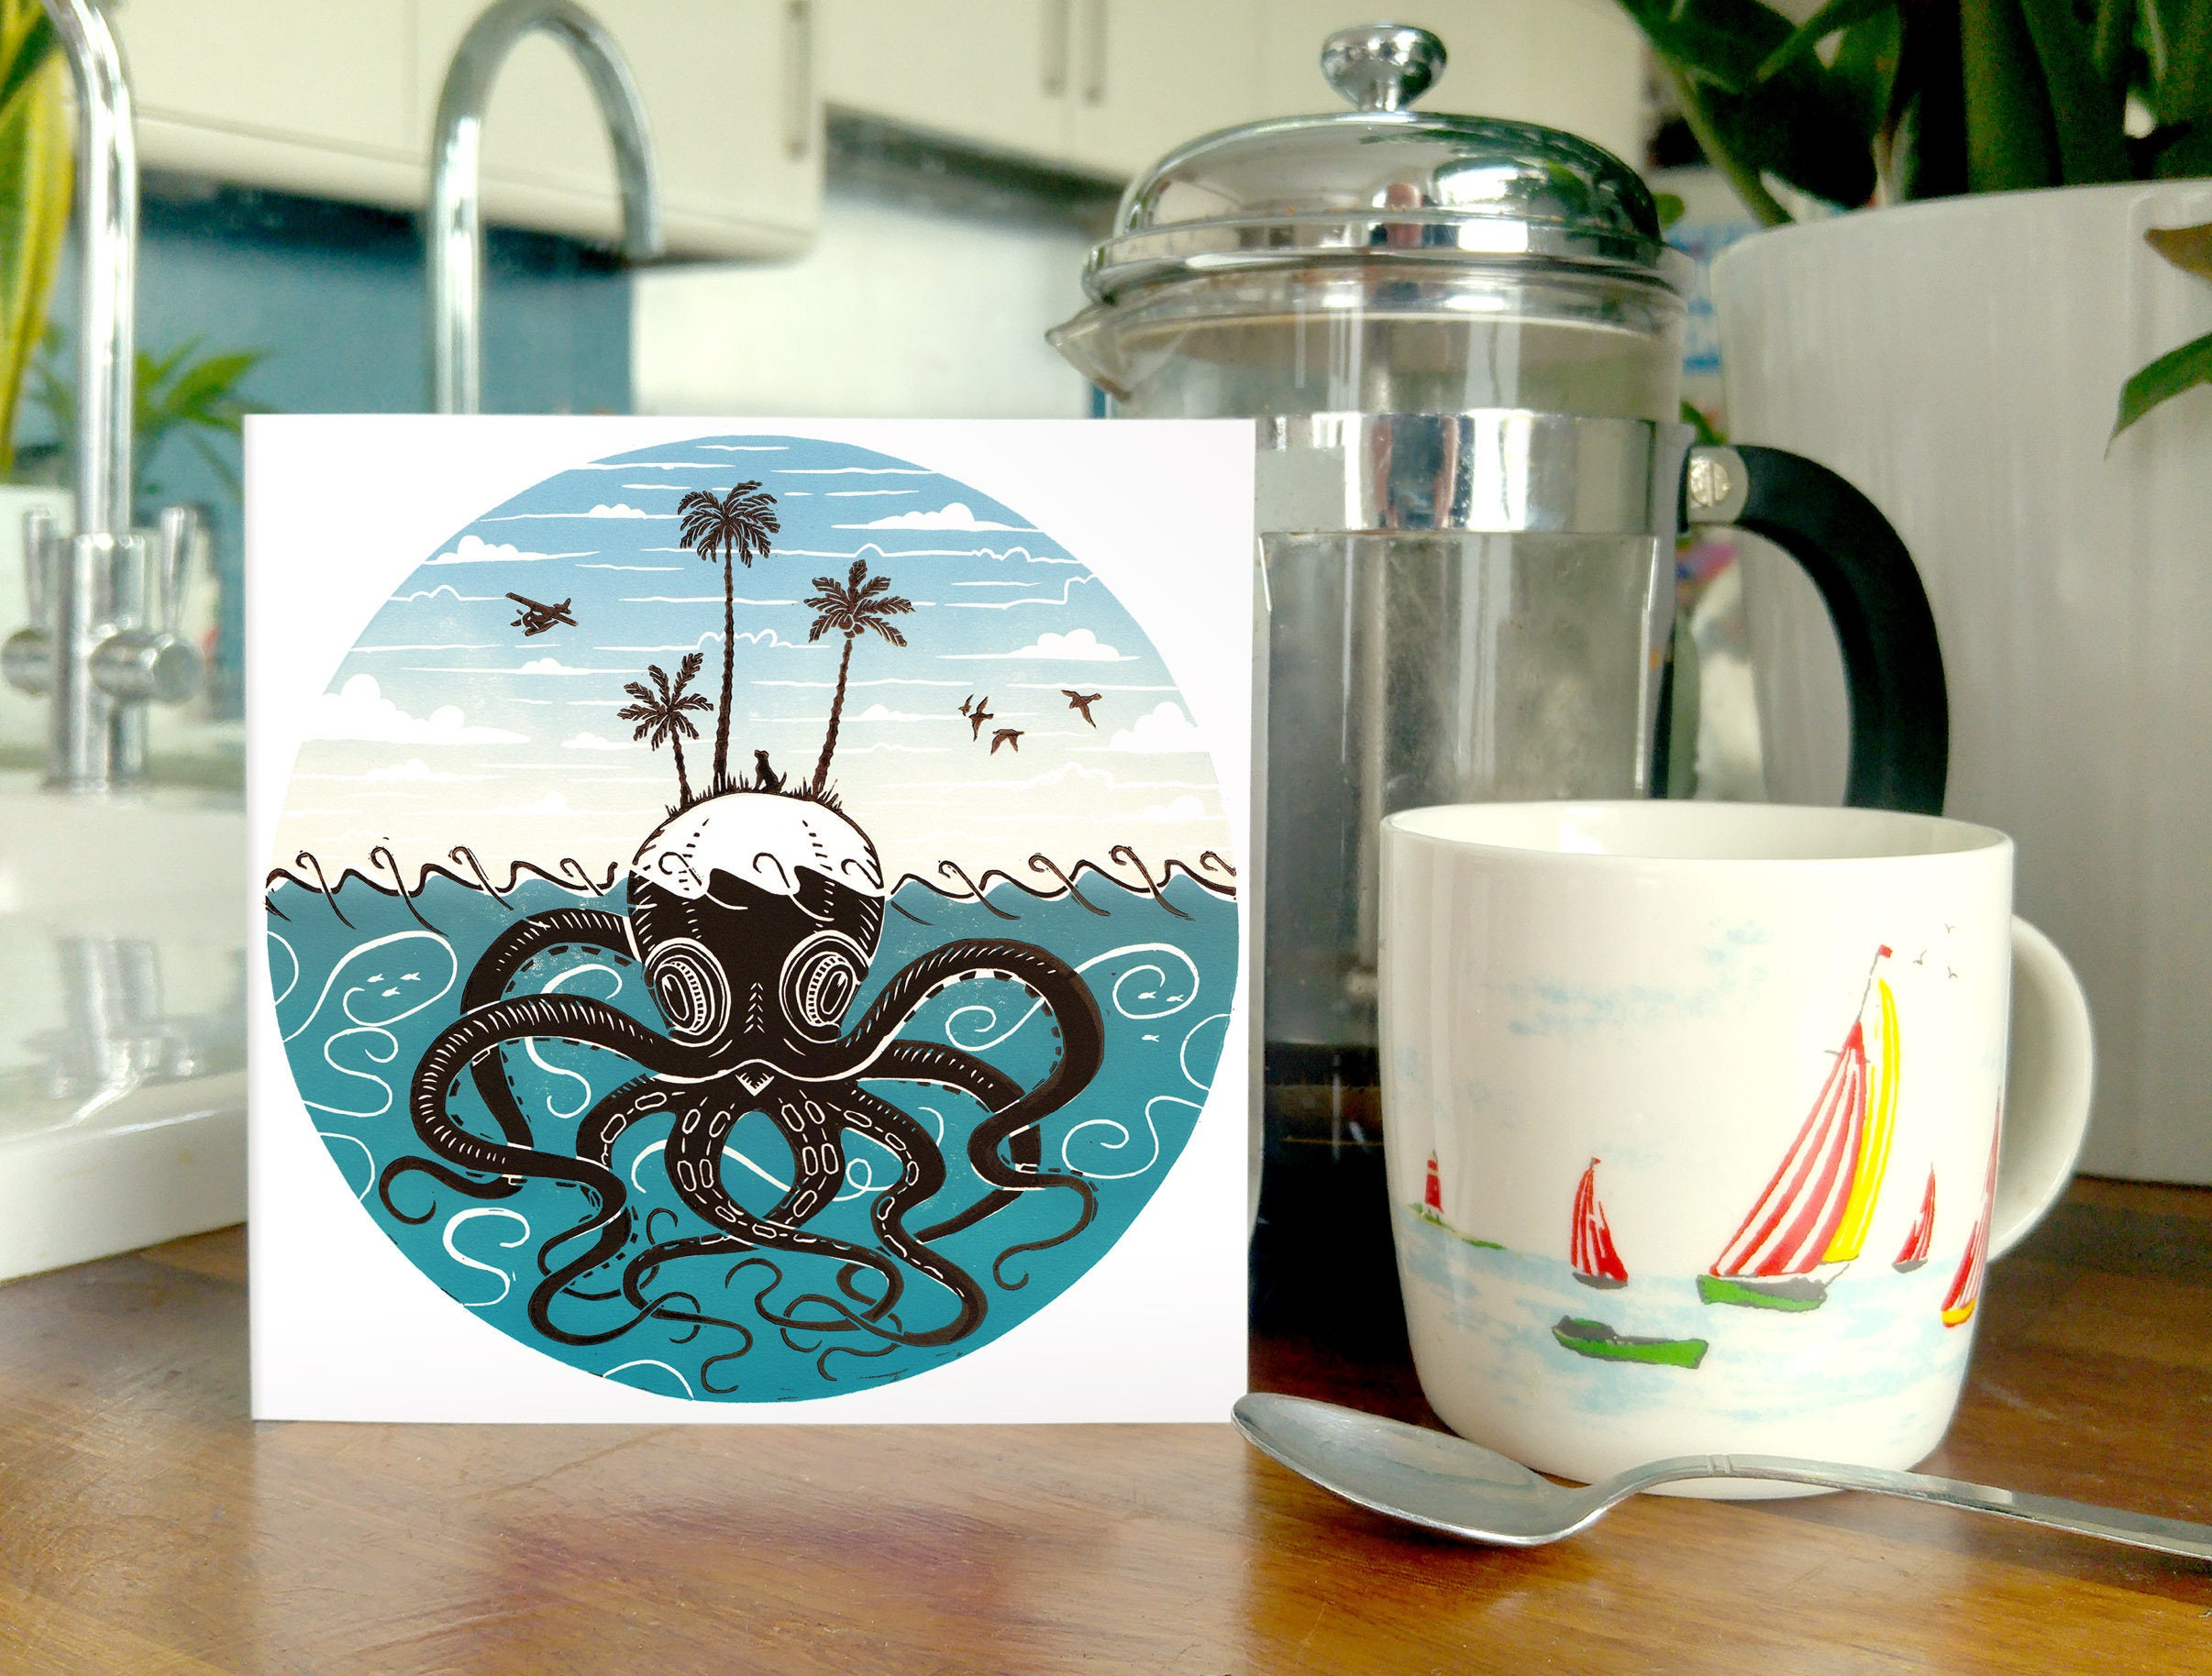 Seascape 2 pack set blank greetings cards a whimsical nautical seascape 2 pack set blank greetings cards a whimsical nautical kraken octopus and whale kristyandbryce Image collections